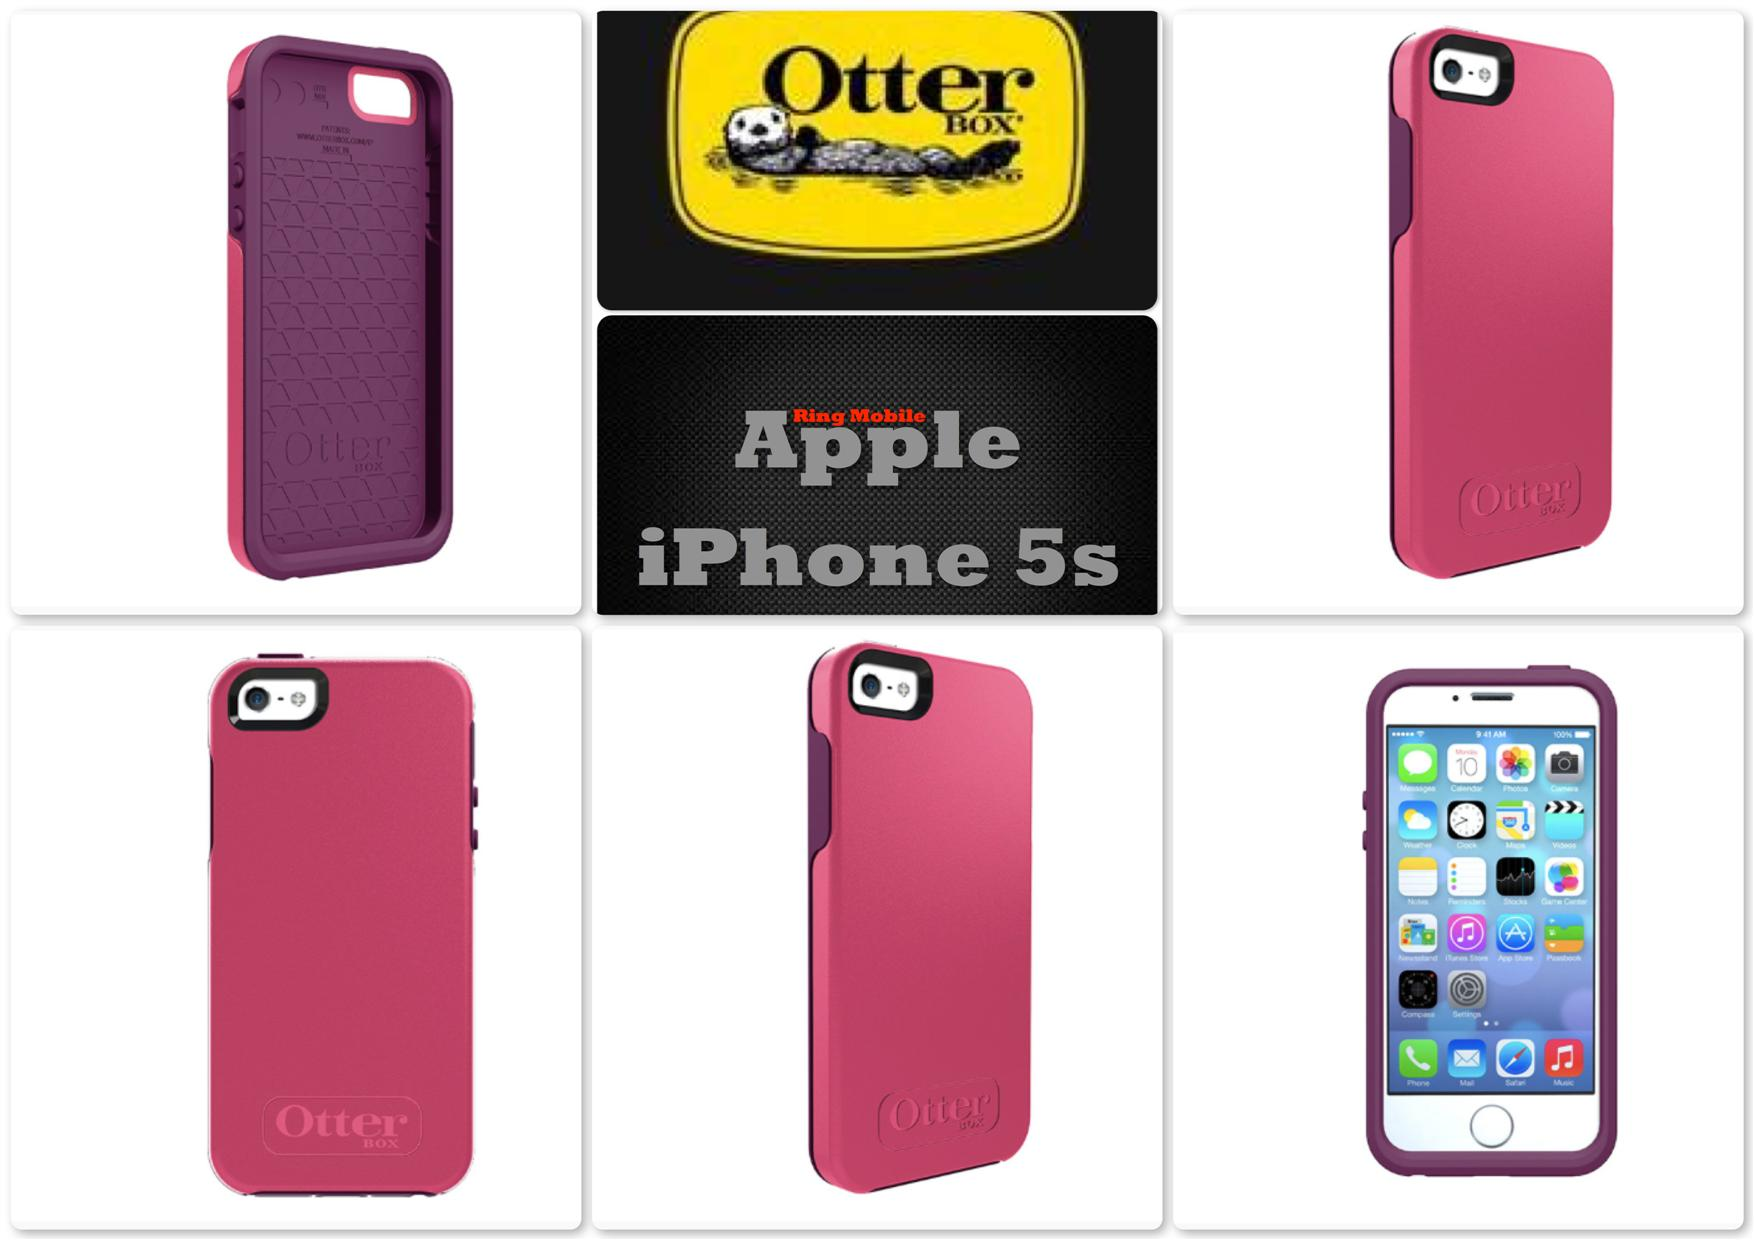 Bdotcom = Apple iPhone 5 5s Otterbox Symmetry Series @ Crushed Damson